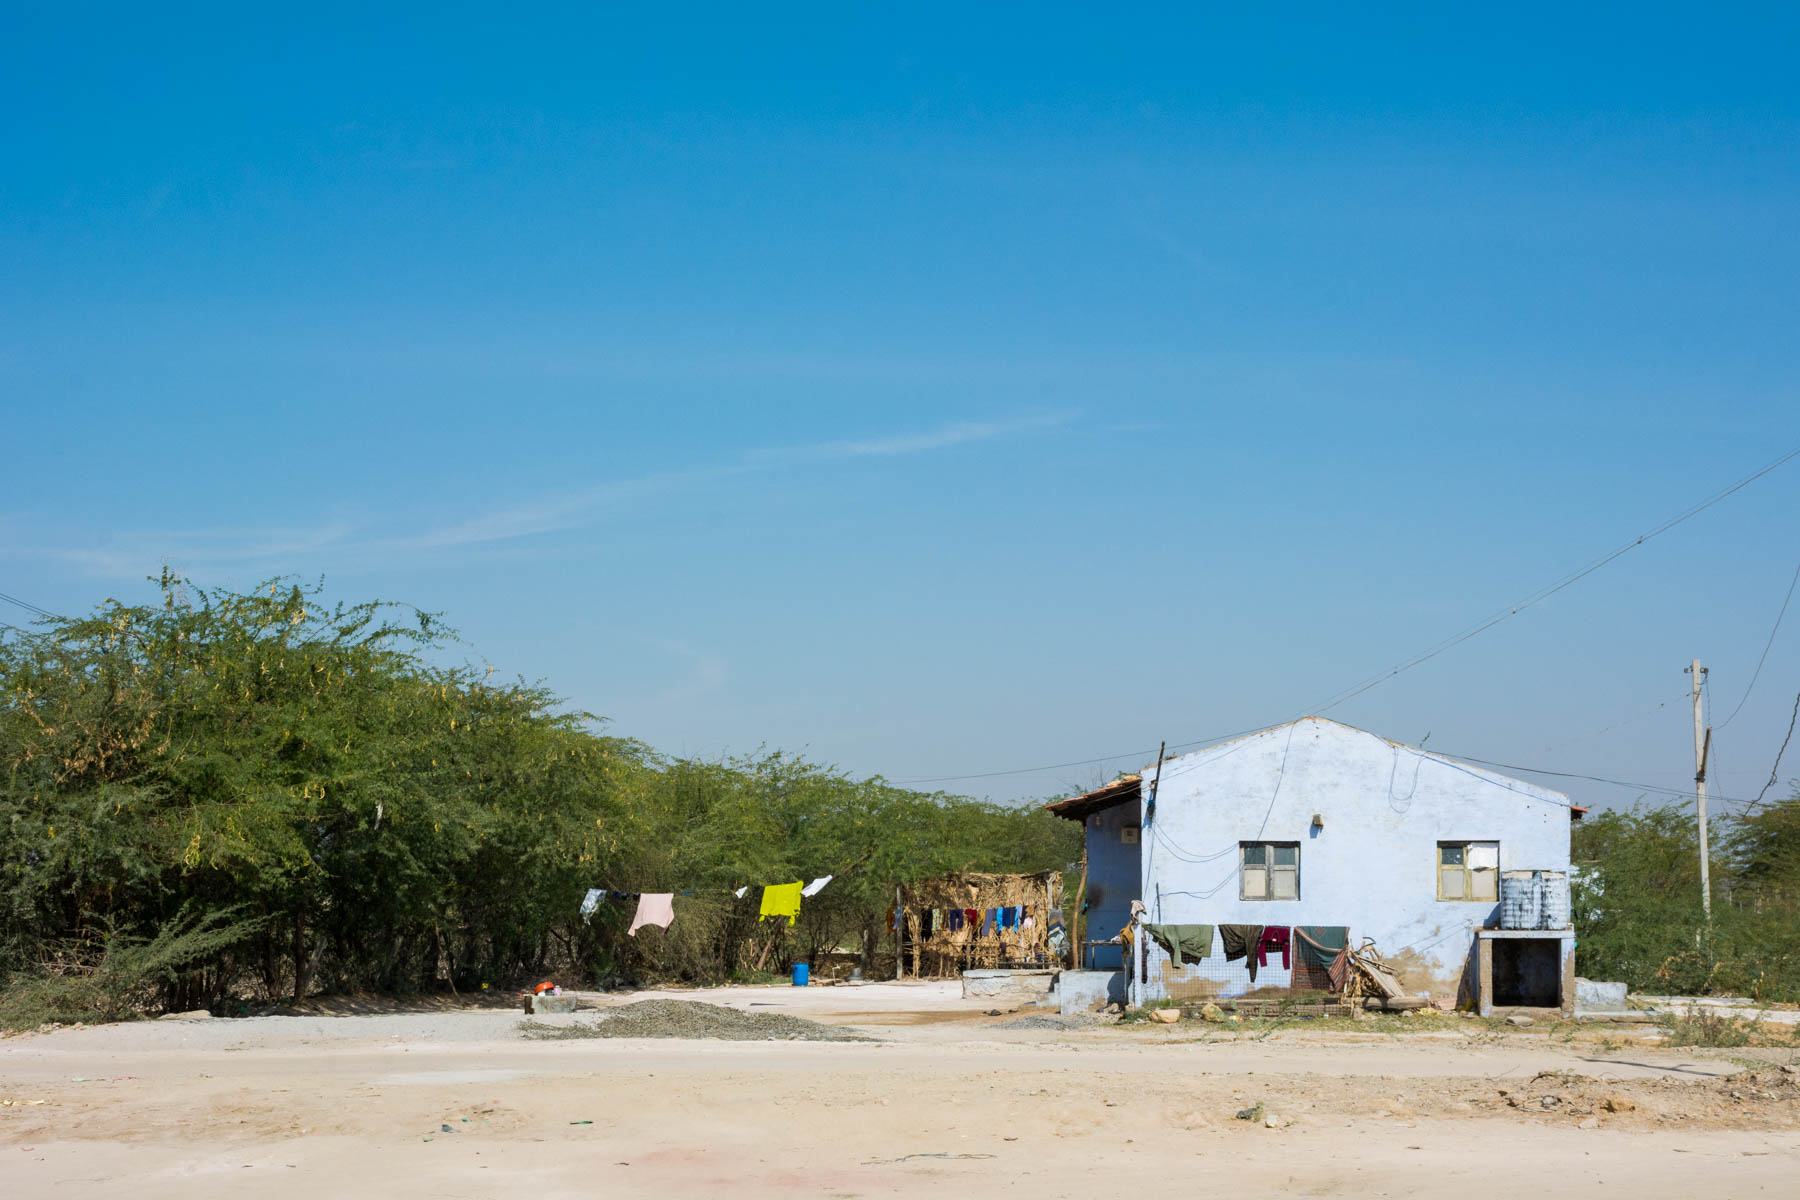 Textiles and crafts of Kutch, Gujarat, India - A lone village house near Bhuj - Lost With Purpose